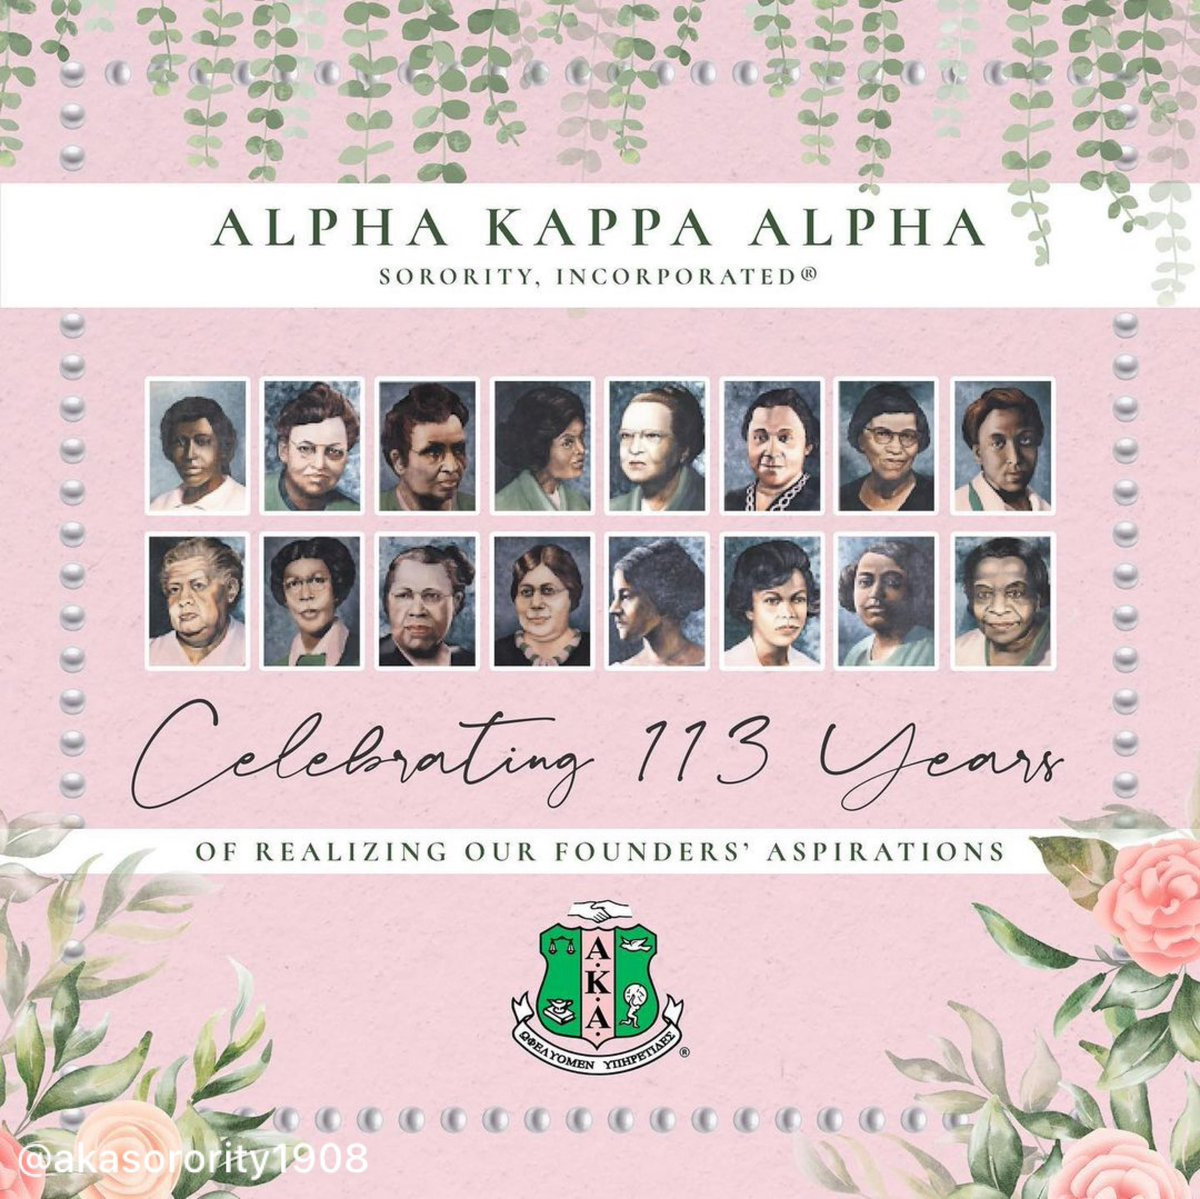 #Repost @akasorority1908  Happy Founders' Day to the Ladies of Alpha Kappa Alpha Sorority, Incorporated! We proudly celebrate 113 years of sisterhood and service, as we pay homage to the Founders' of our illustrious organization. #AKA1908 #AKA113 #AKAFoundersDay 💗💚